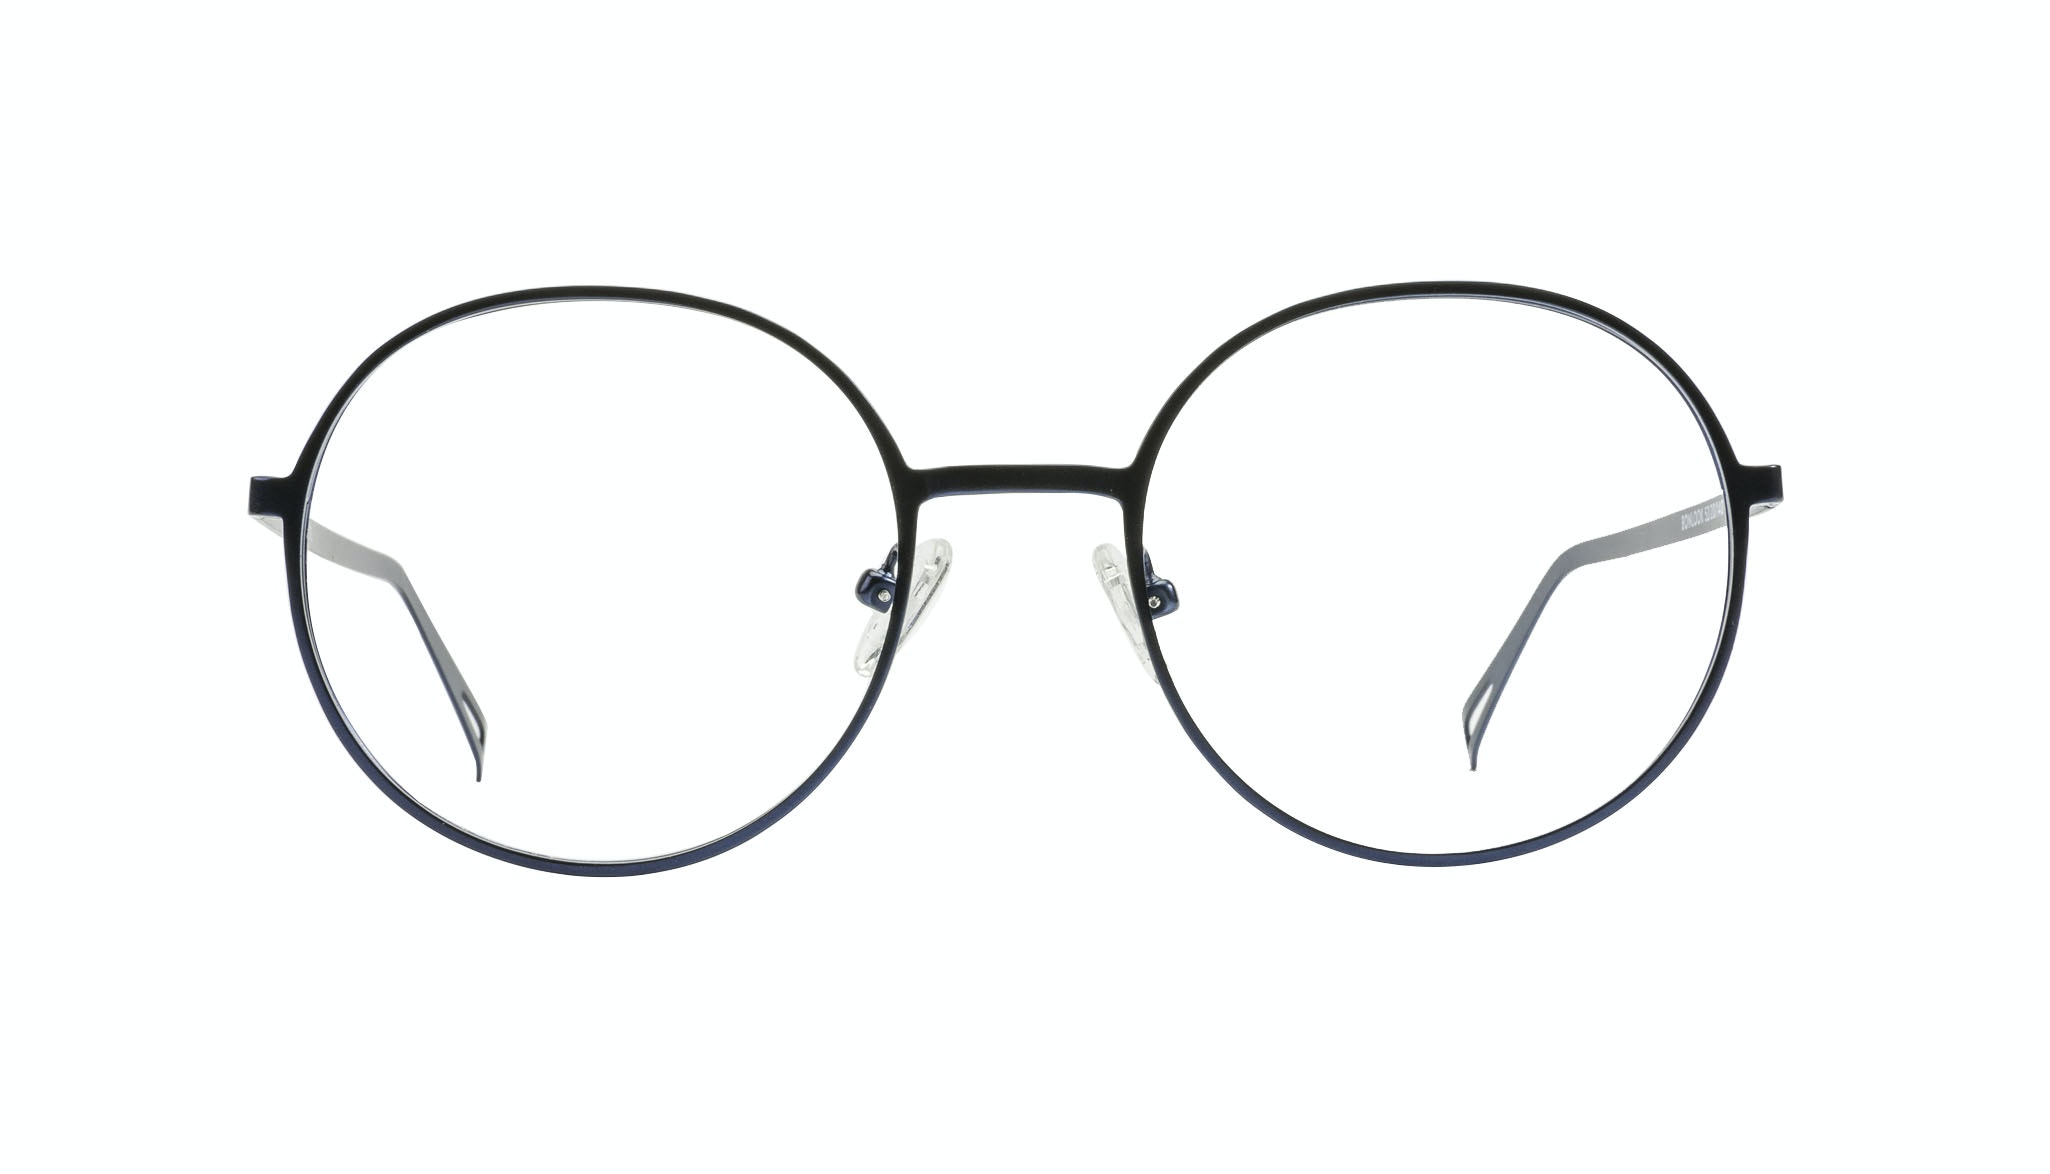 Affordable Fashion Glasses Round Eyeglasses Men Women Varna Navy